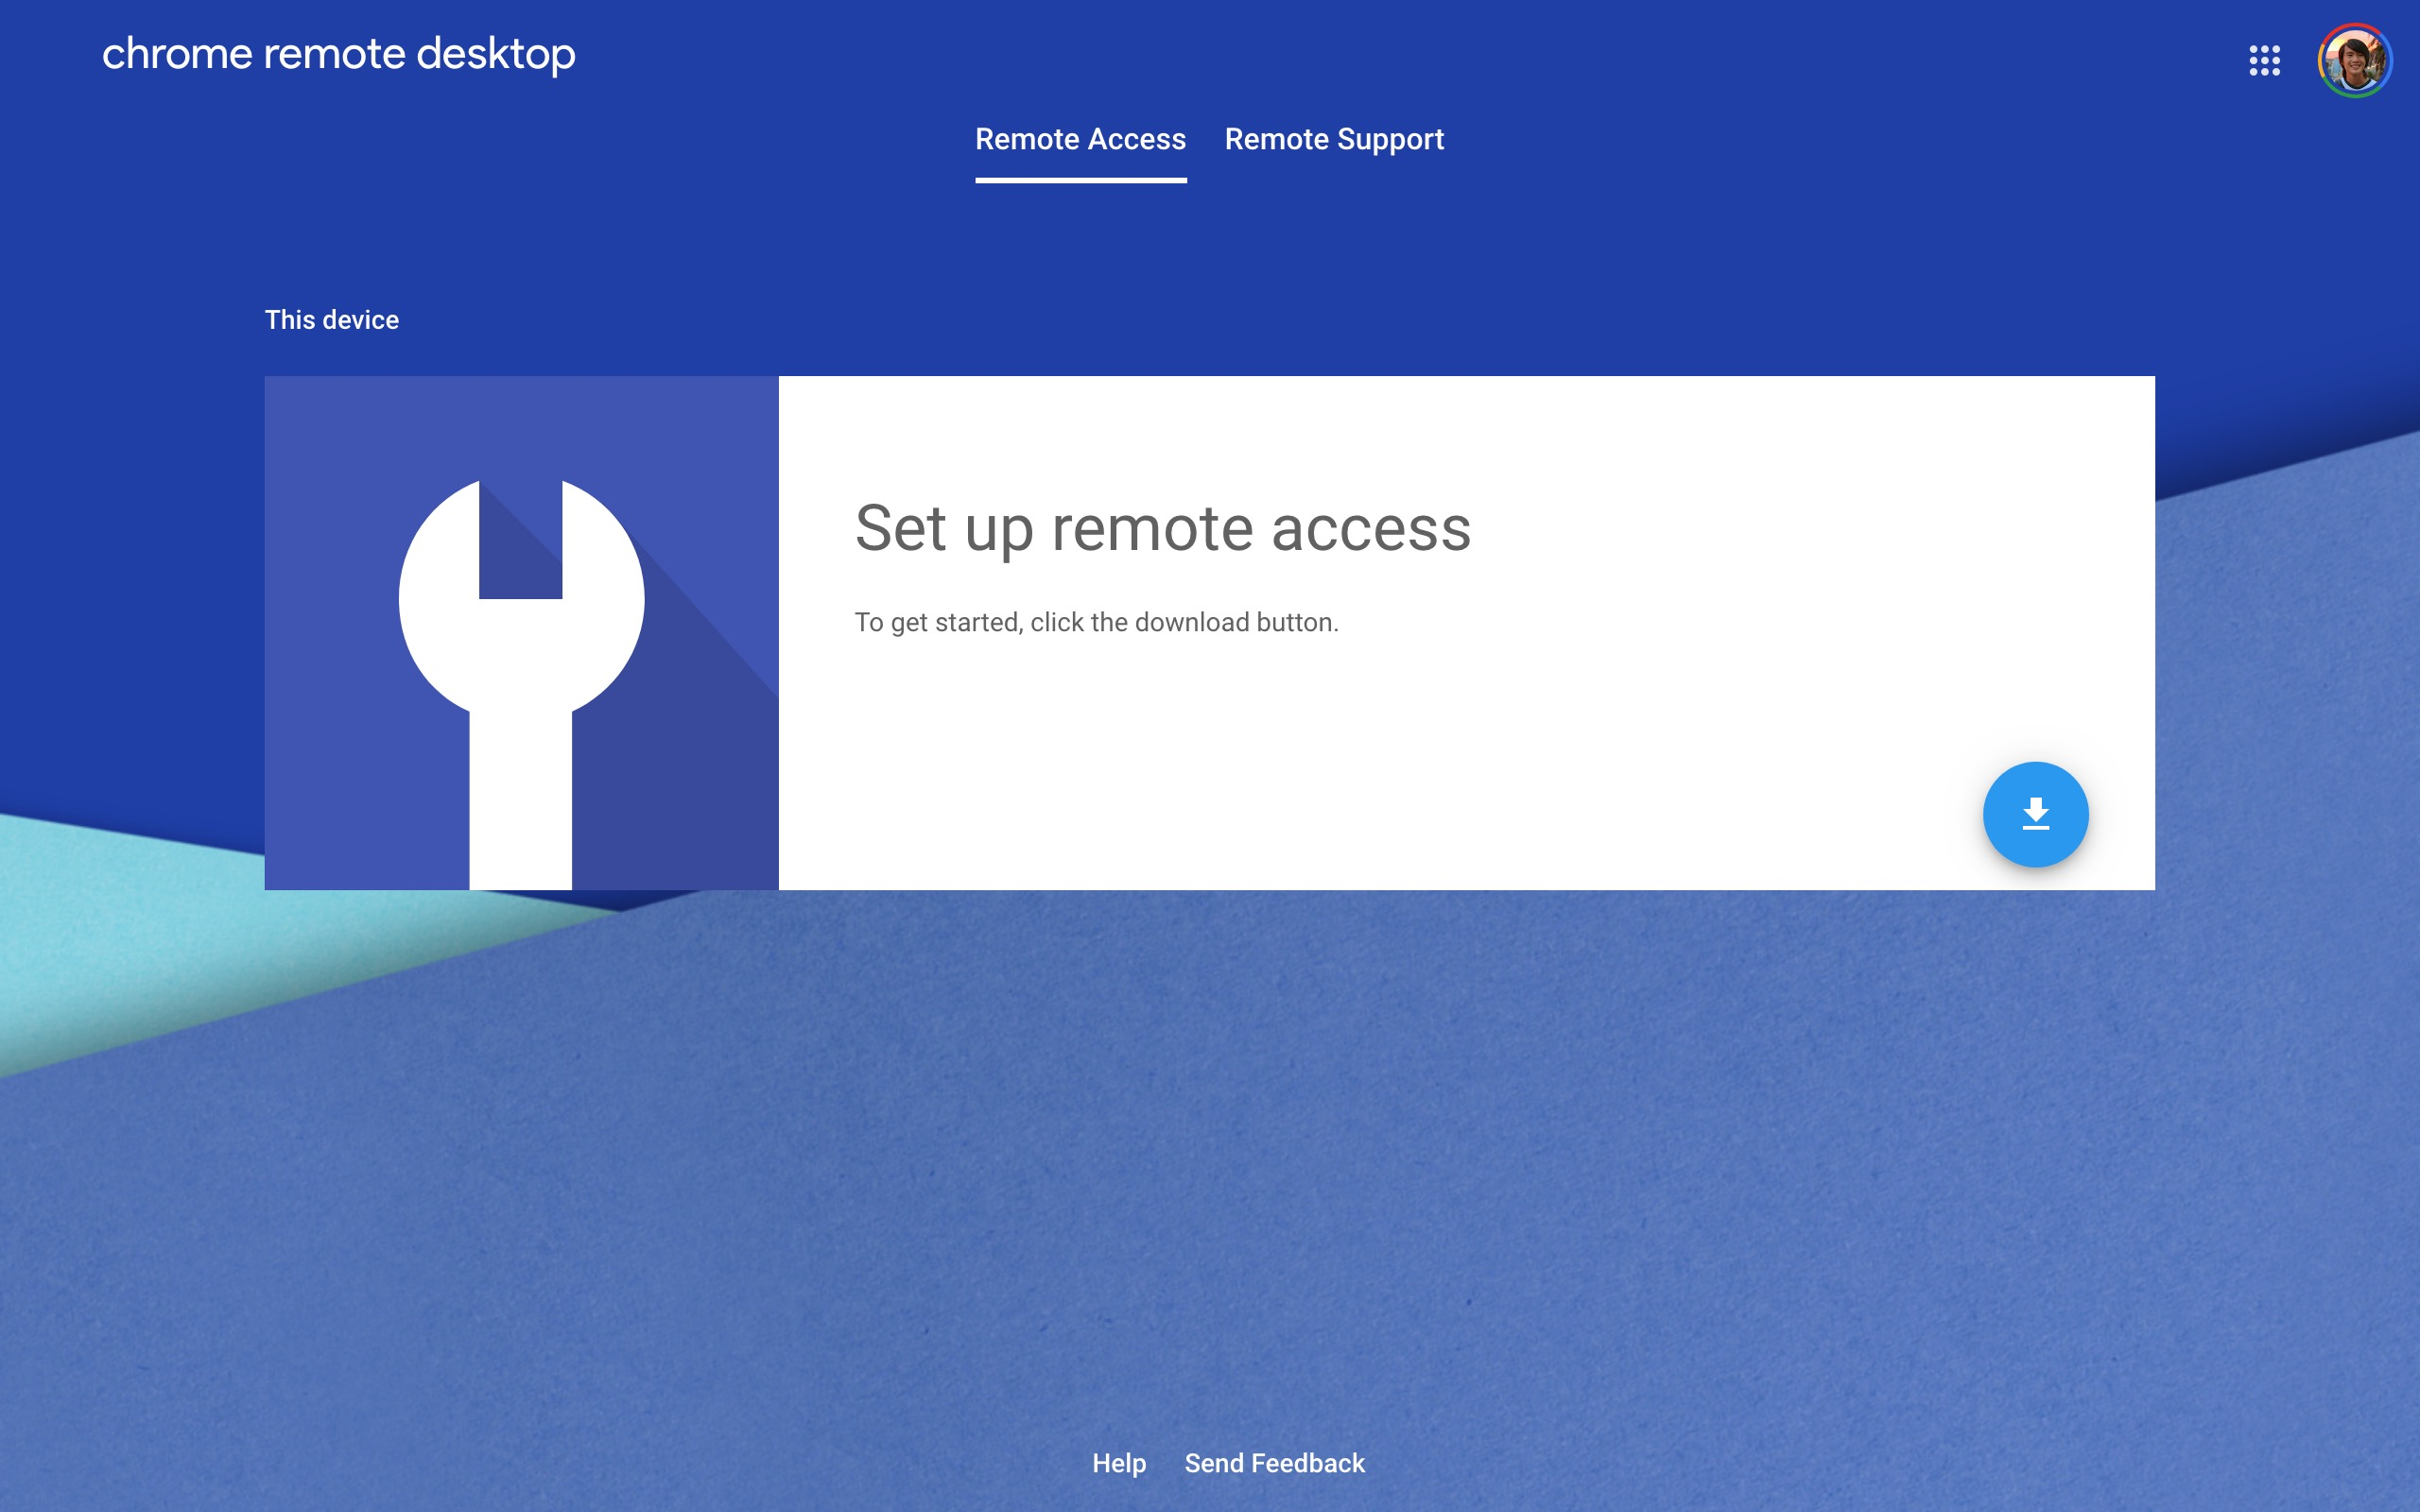 Chrome Remote Desktop now available on the web - 9to5Google